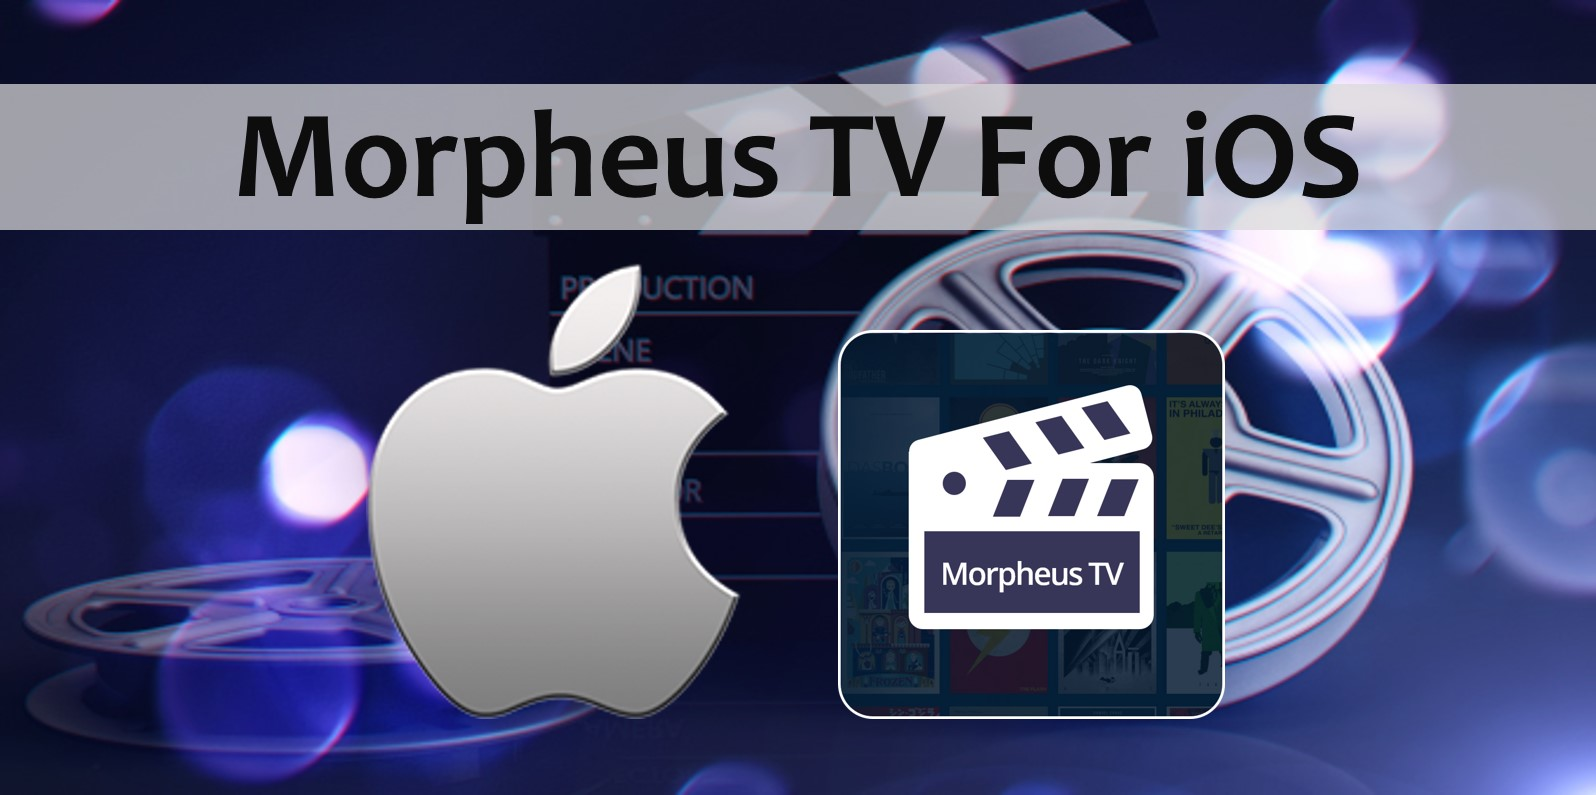 admin, Author at Morpheus TV APK 1 66 | Download for Android, iOS